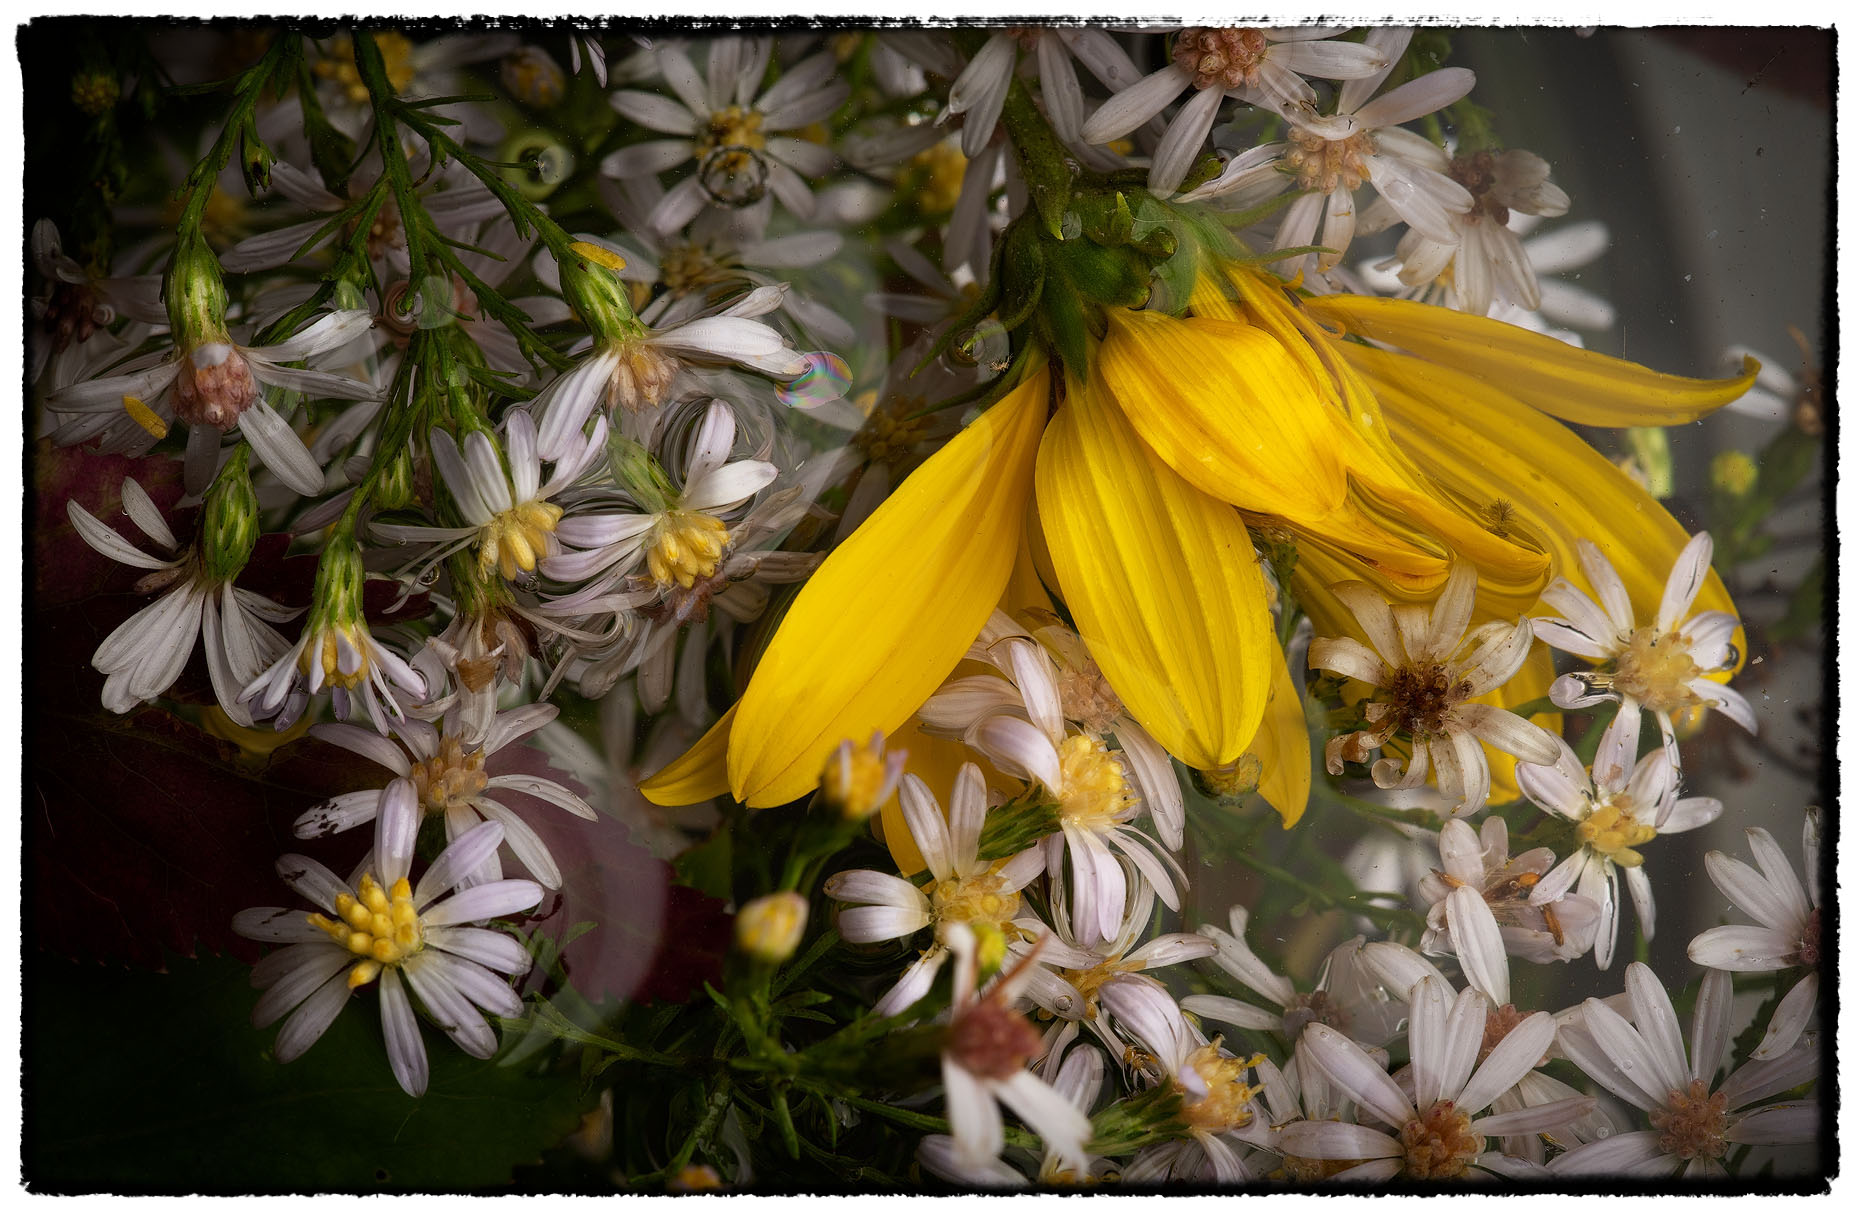 Asters and Sunflower Petals